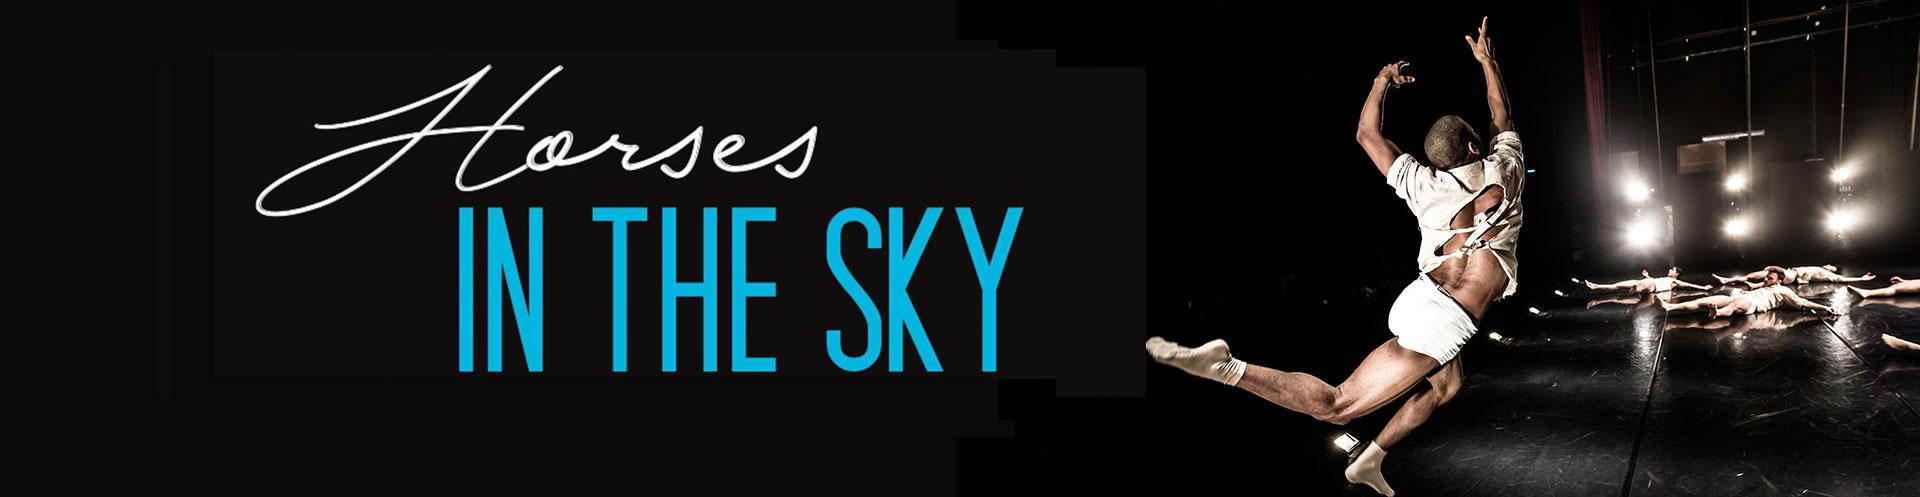 HORSES IN THE SKY | October 24, 2017 at 8 pm | Tickets on Sale Now!